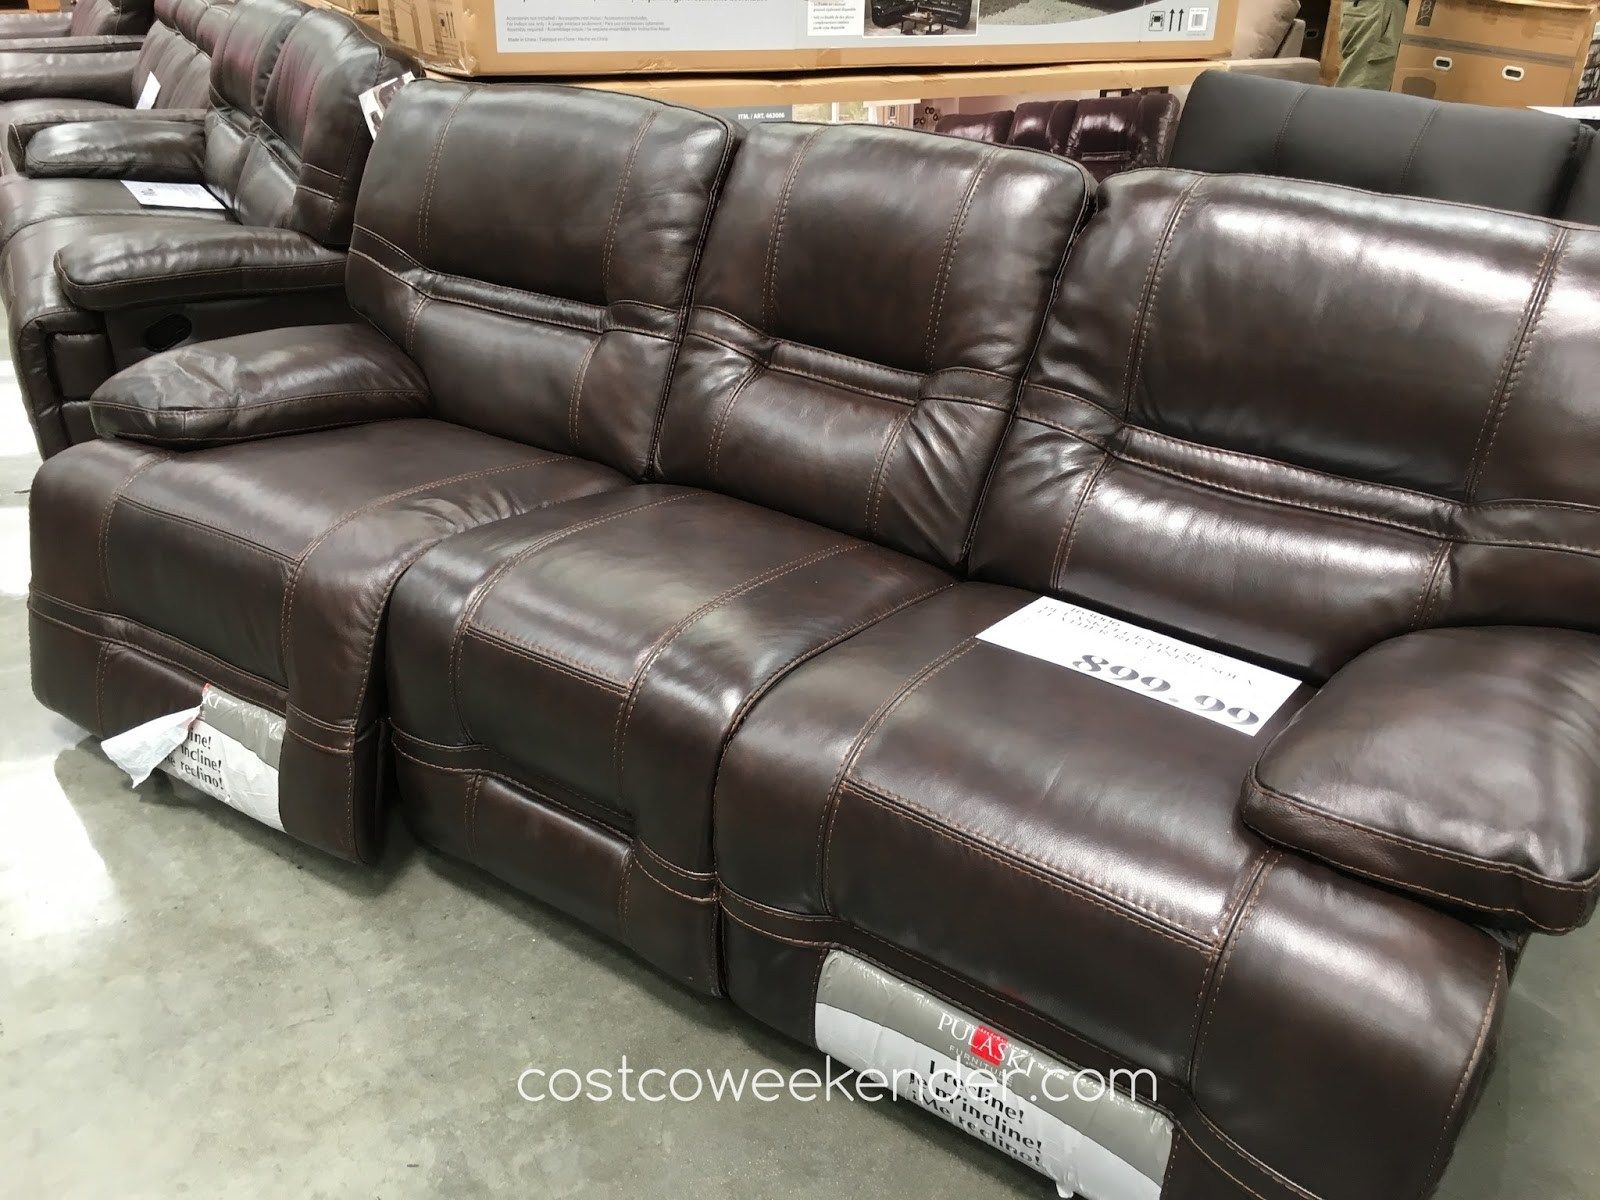 Pin By Dewa Sia On E Rheumatism Net Costco Furniture Couch